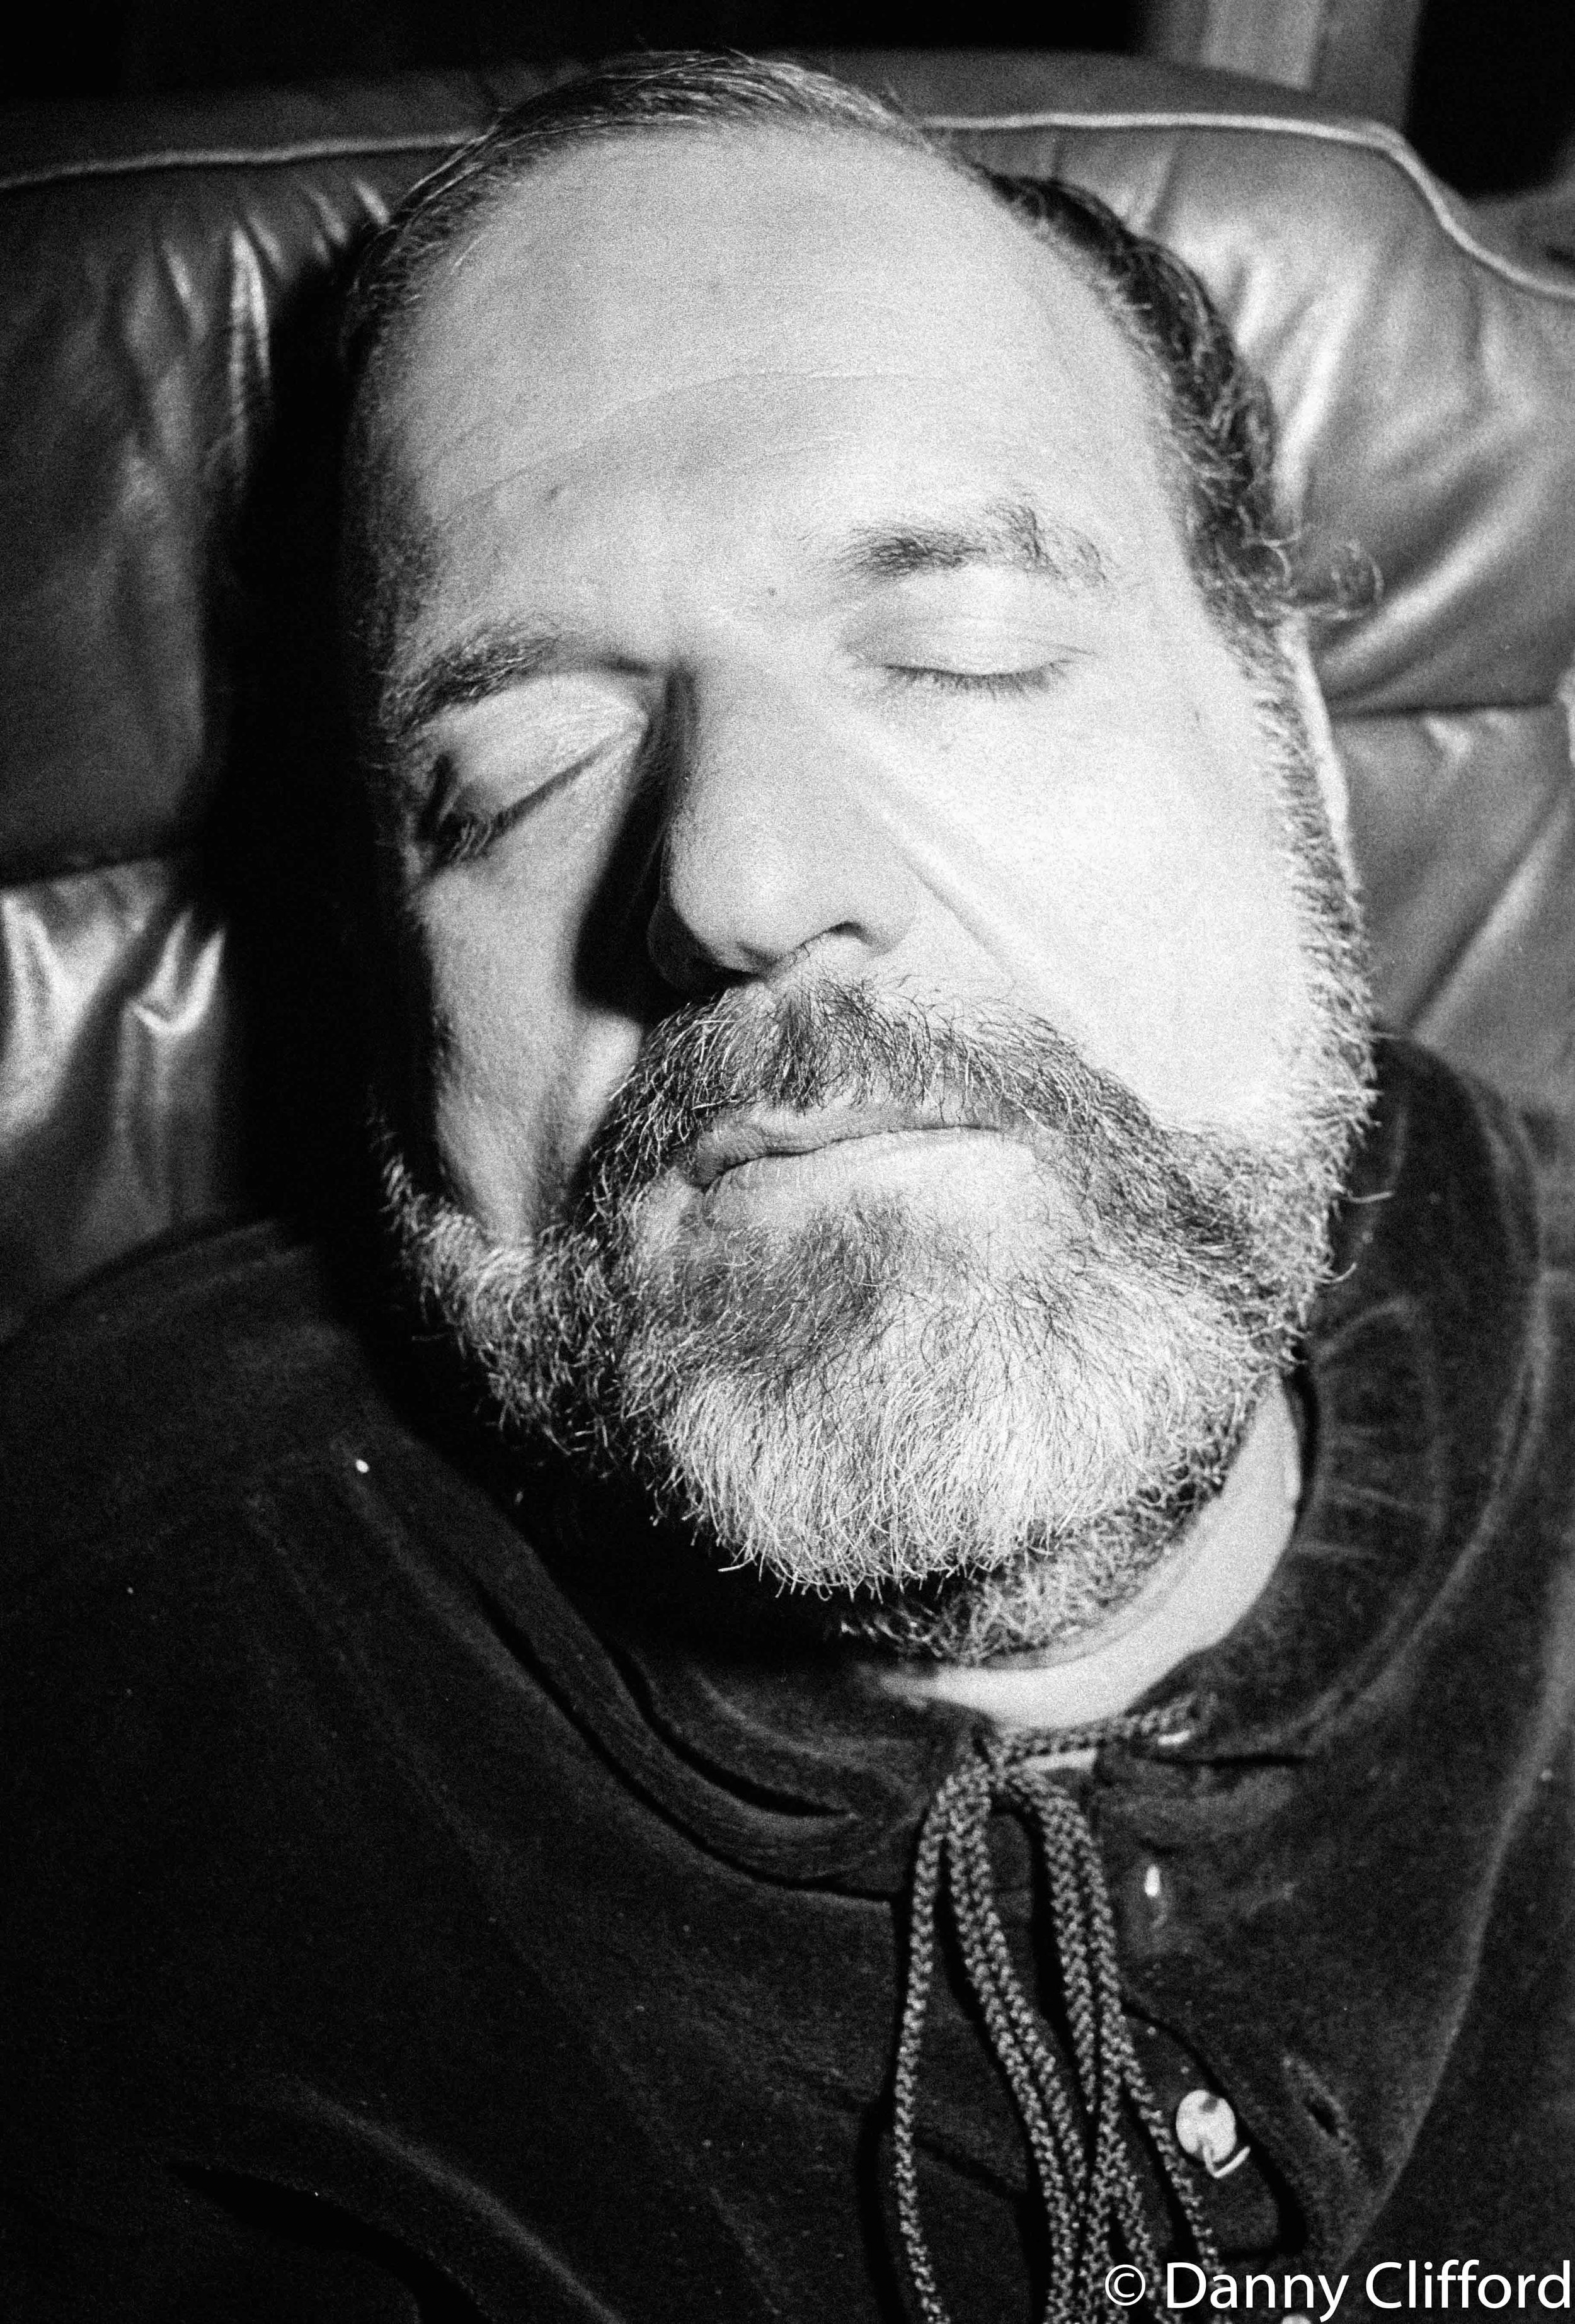 A very tired Paul Wasserman (or Wasso as he was known).